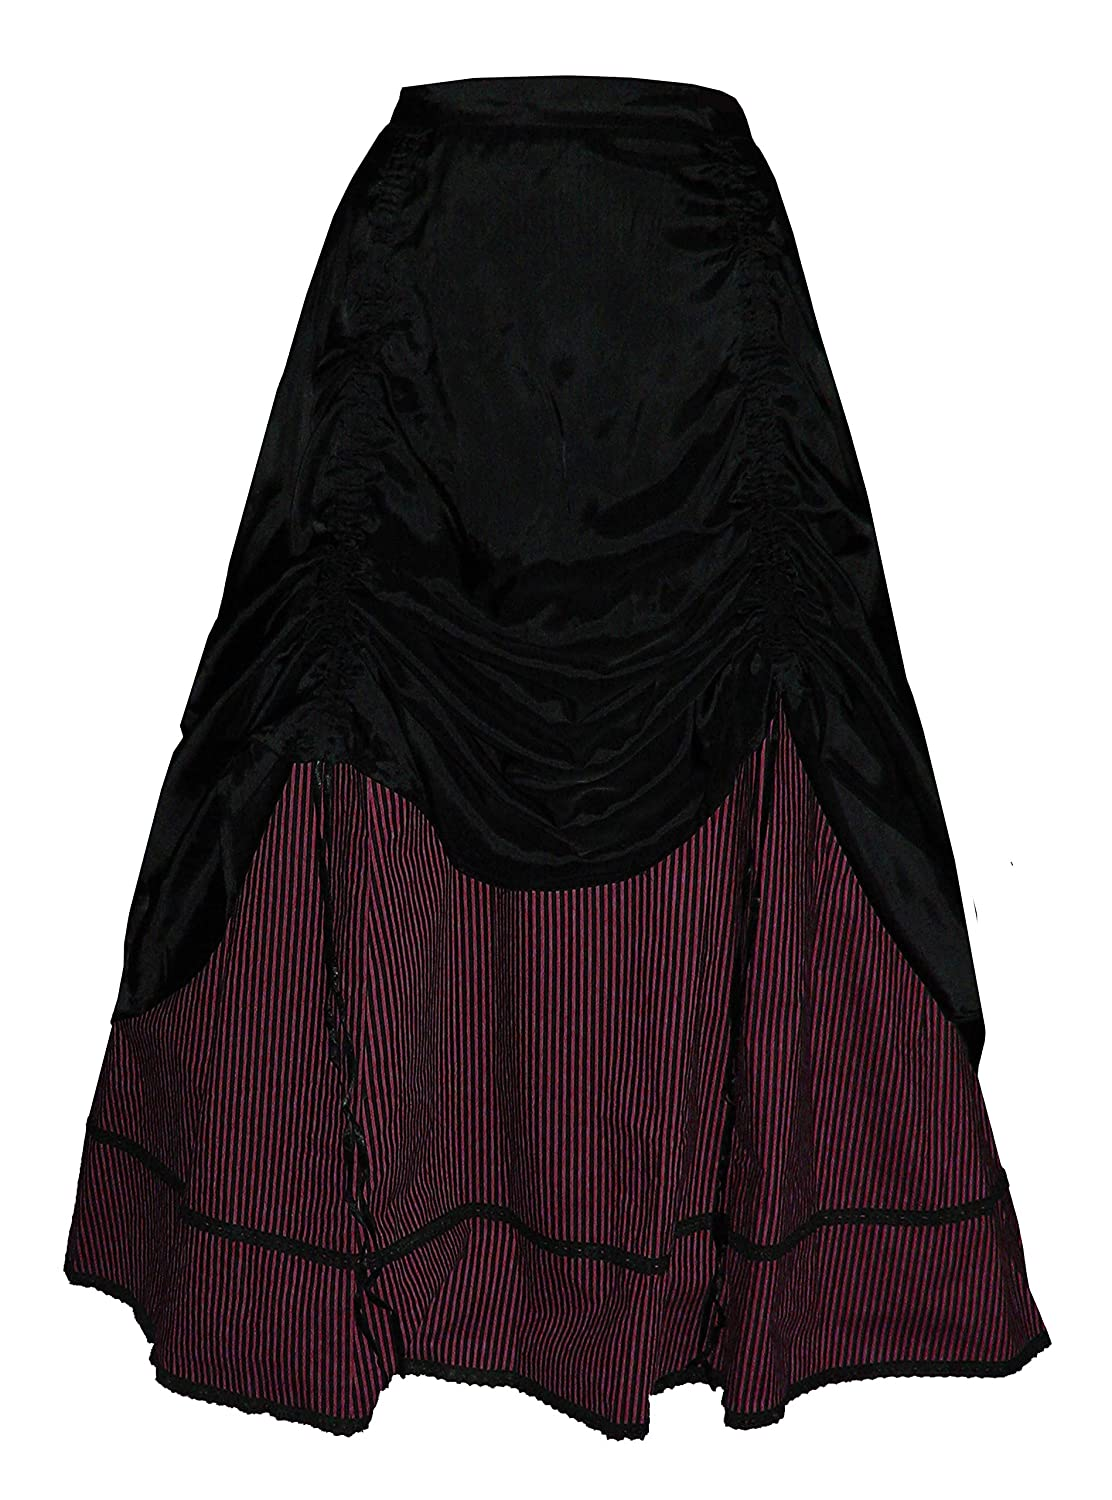 Victorian Clothing, Costumes & 1800s Fashion Funhouse Victorian Valentine Steampunk Gothic Civil War Striped Womens & Skirt $77.00 AT vintagedancer.com